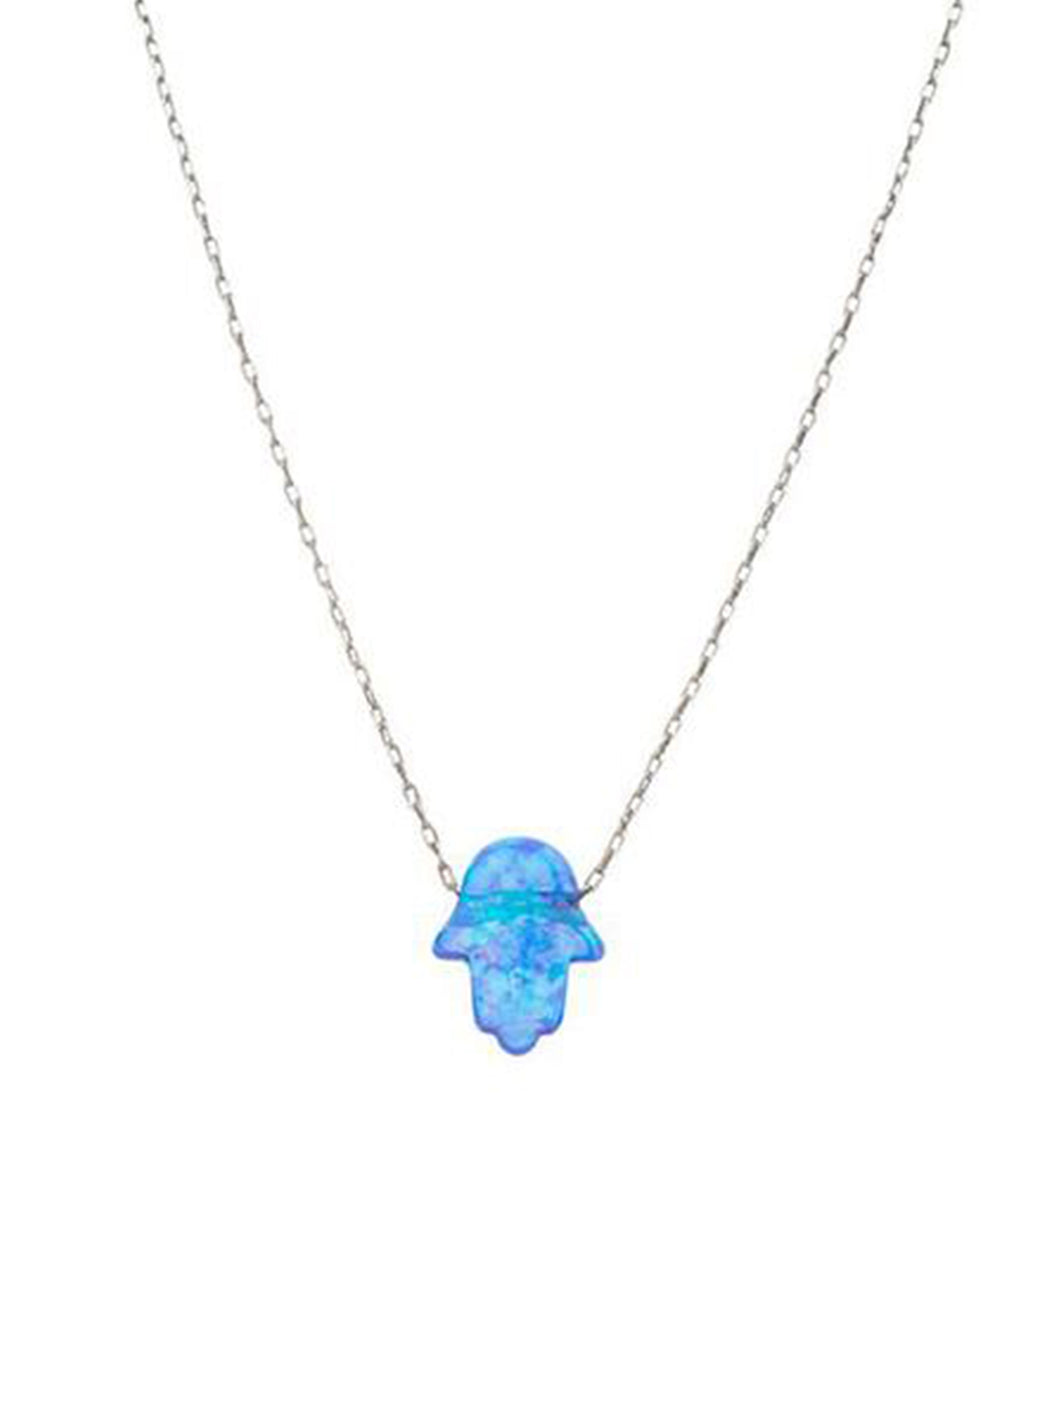 Cornflower Blue Opal Hamsa Lucky Necklace 1/4